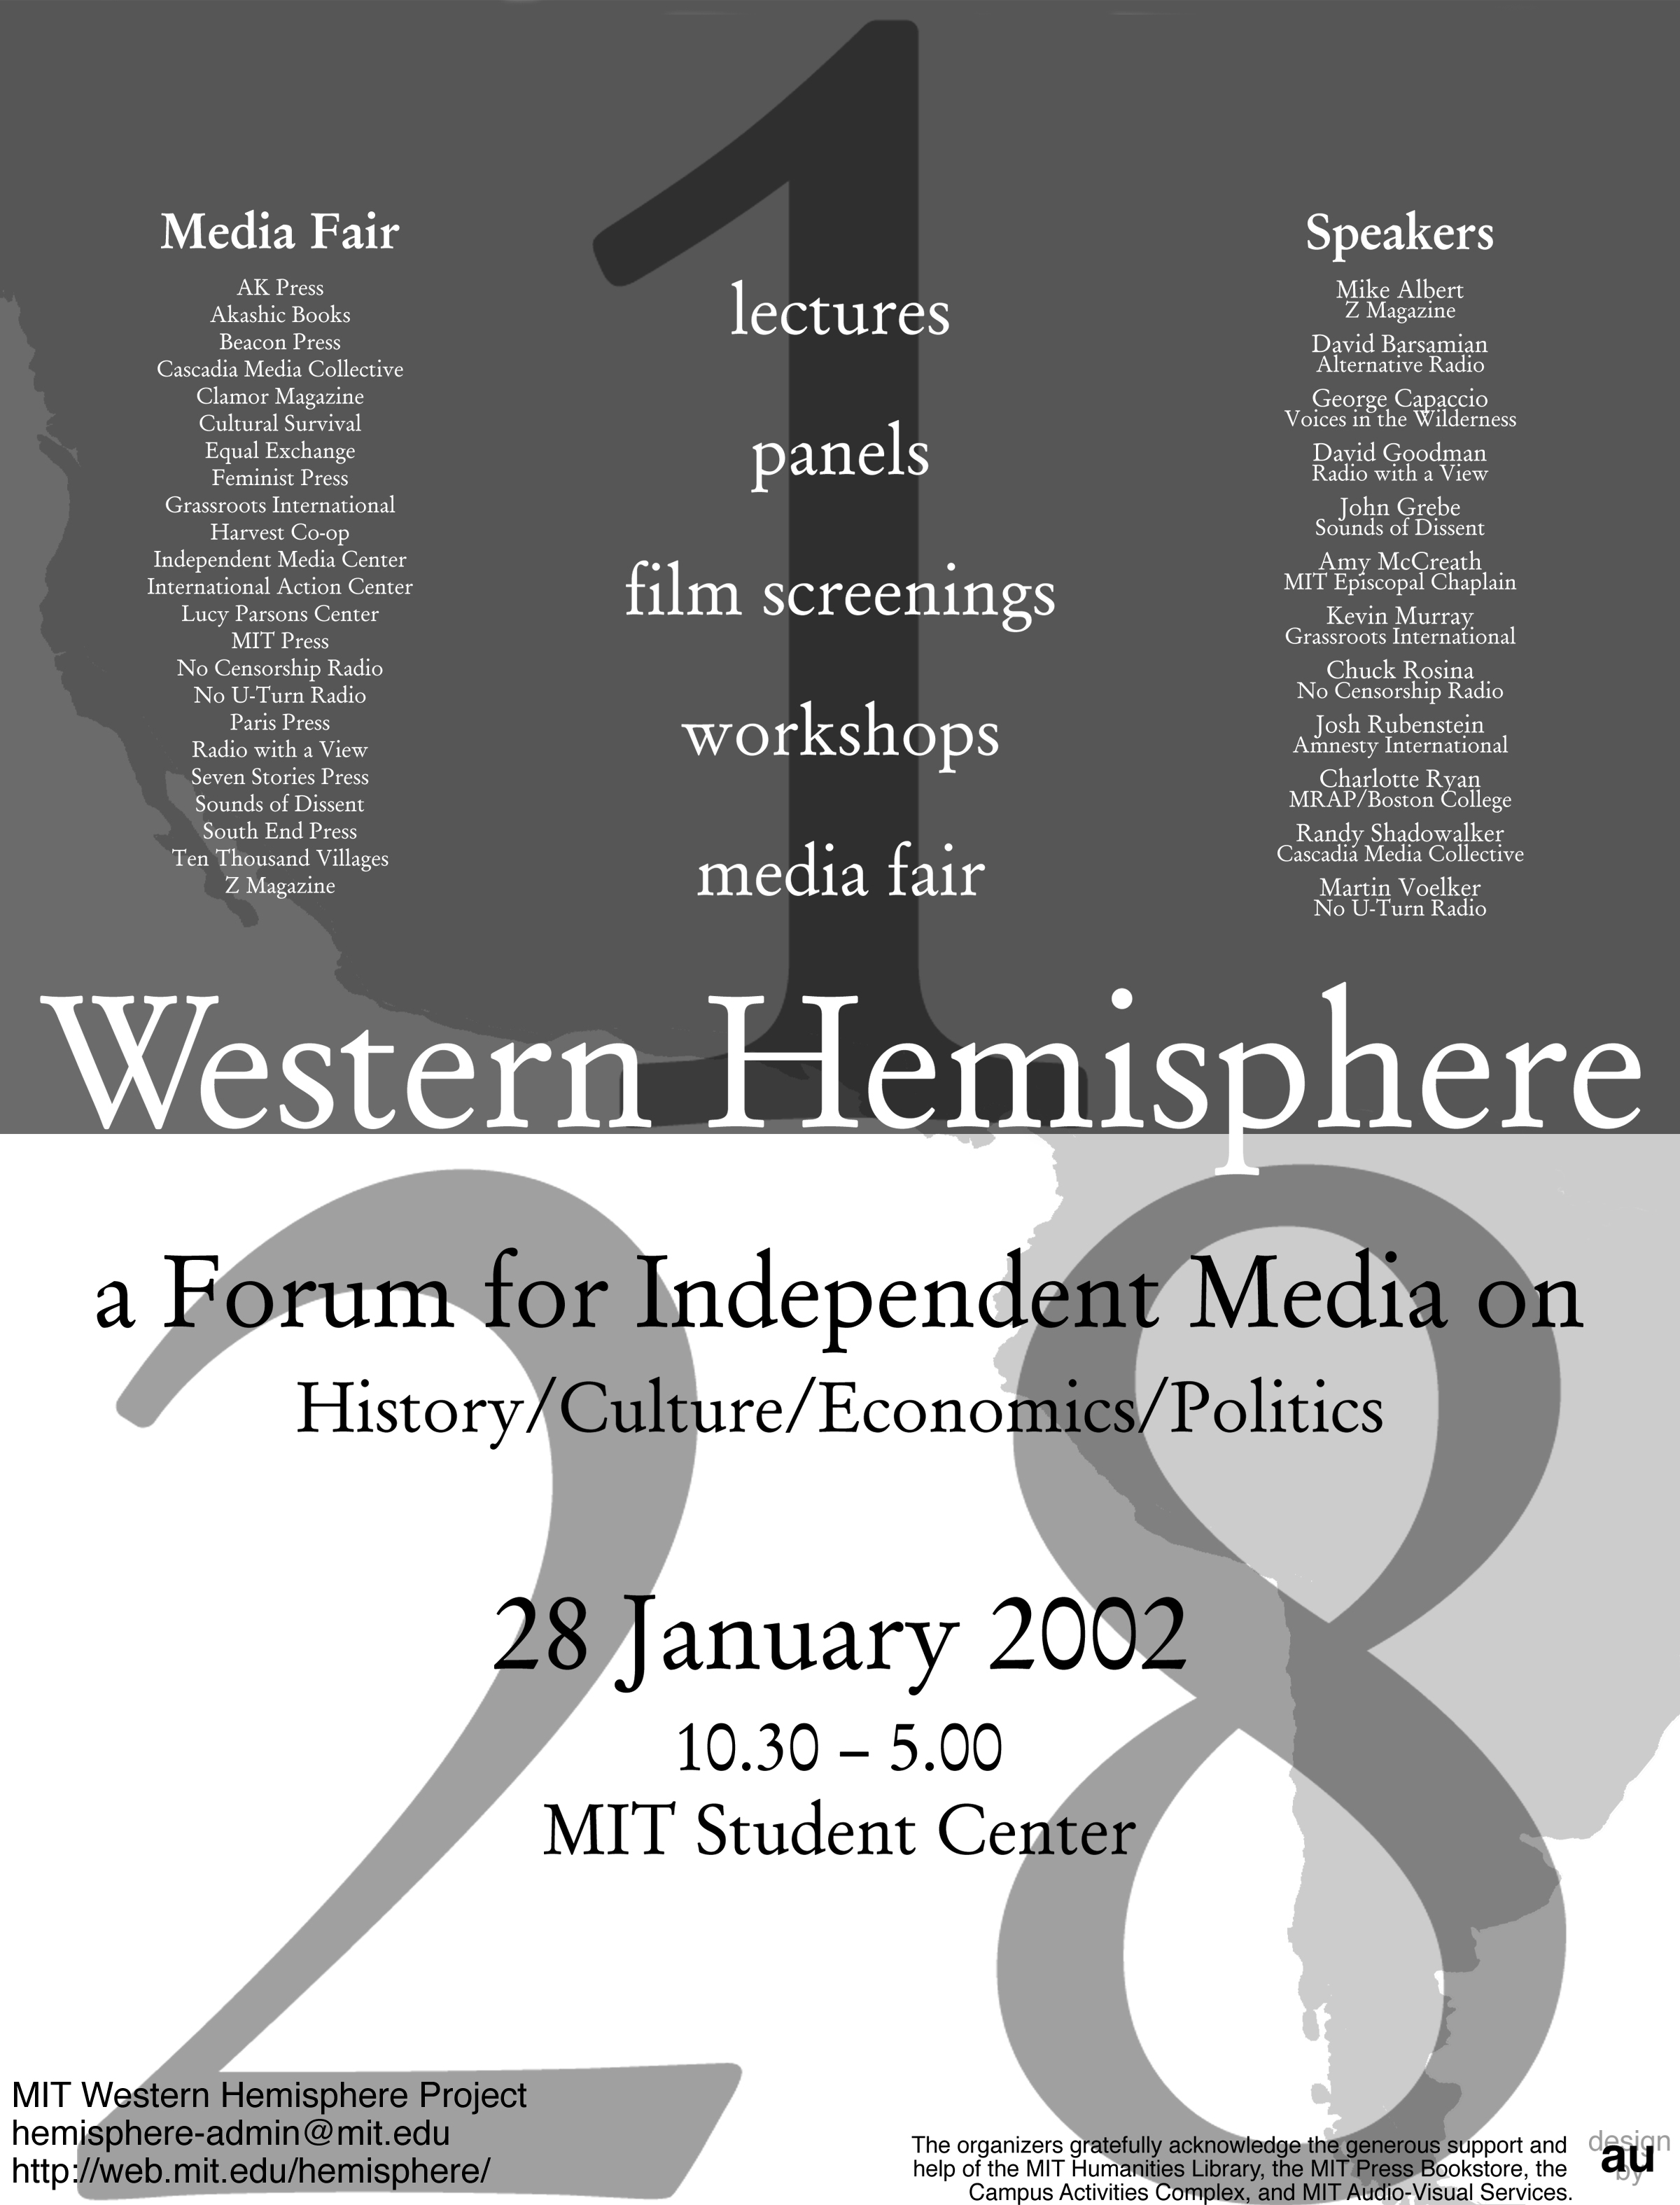 MIT Western Hemisphere Project: Independent Media Forum